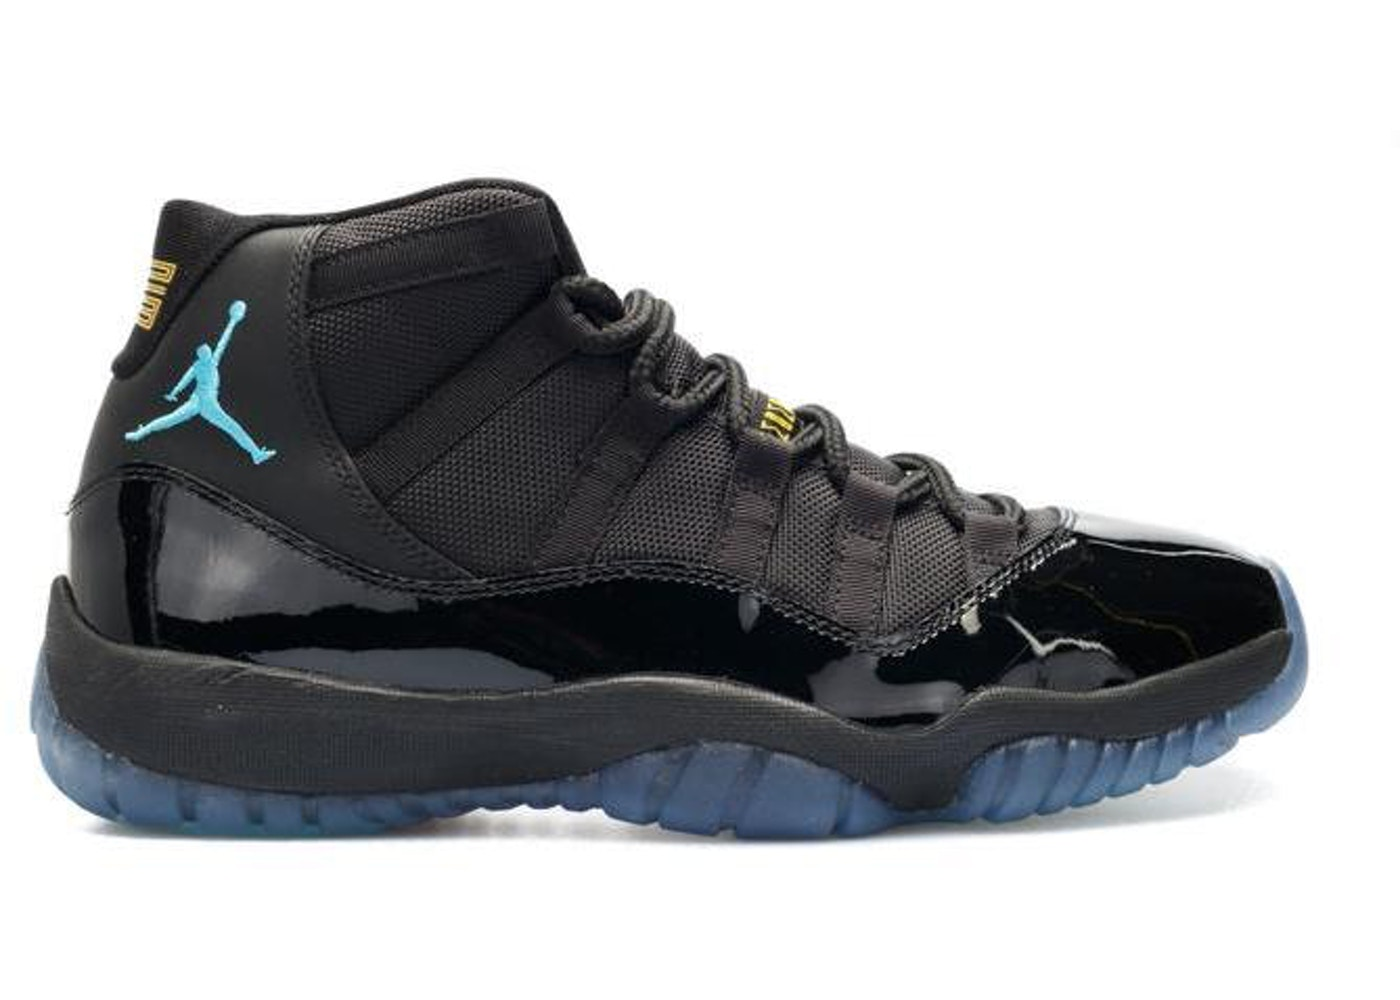 uk availability 2a498 acb64 Jordan 11 Retro Gamma Blue - 378037-006